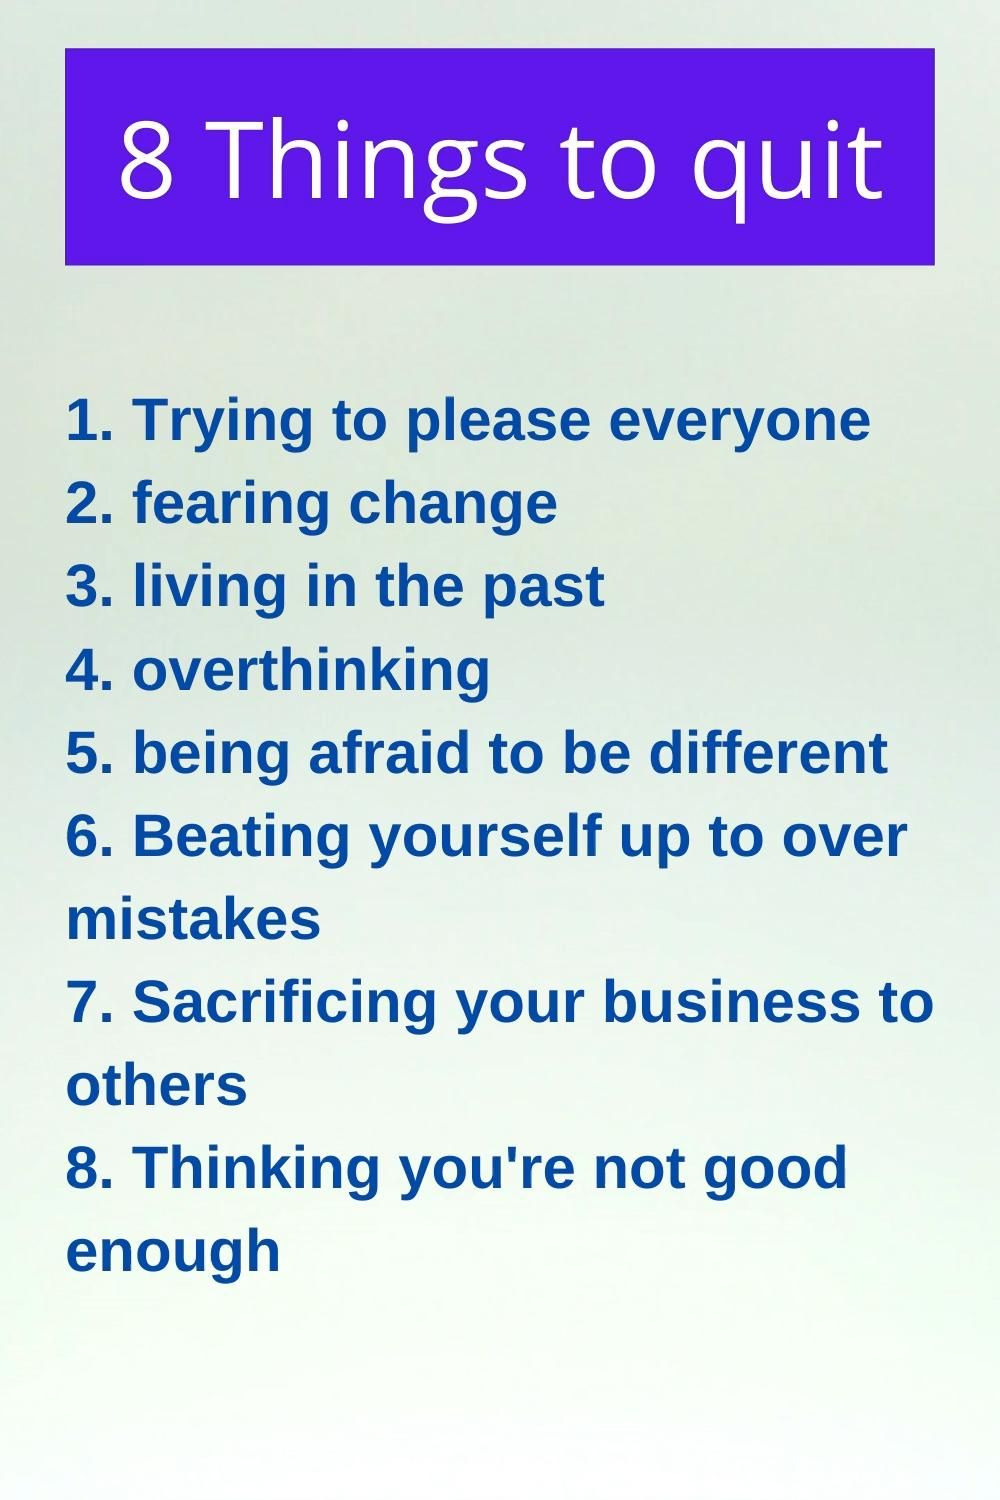 8 Things to quit